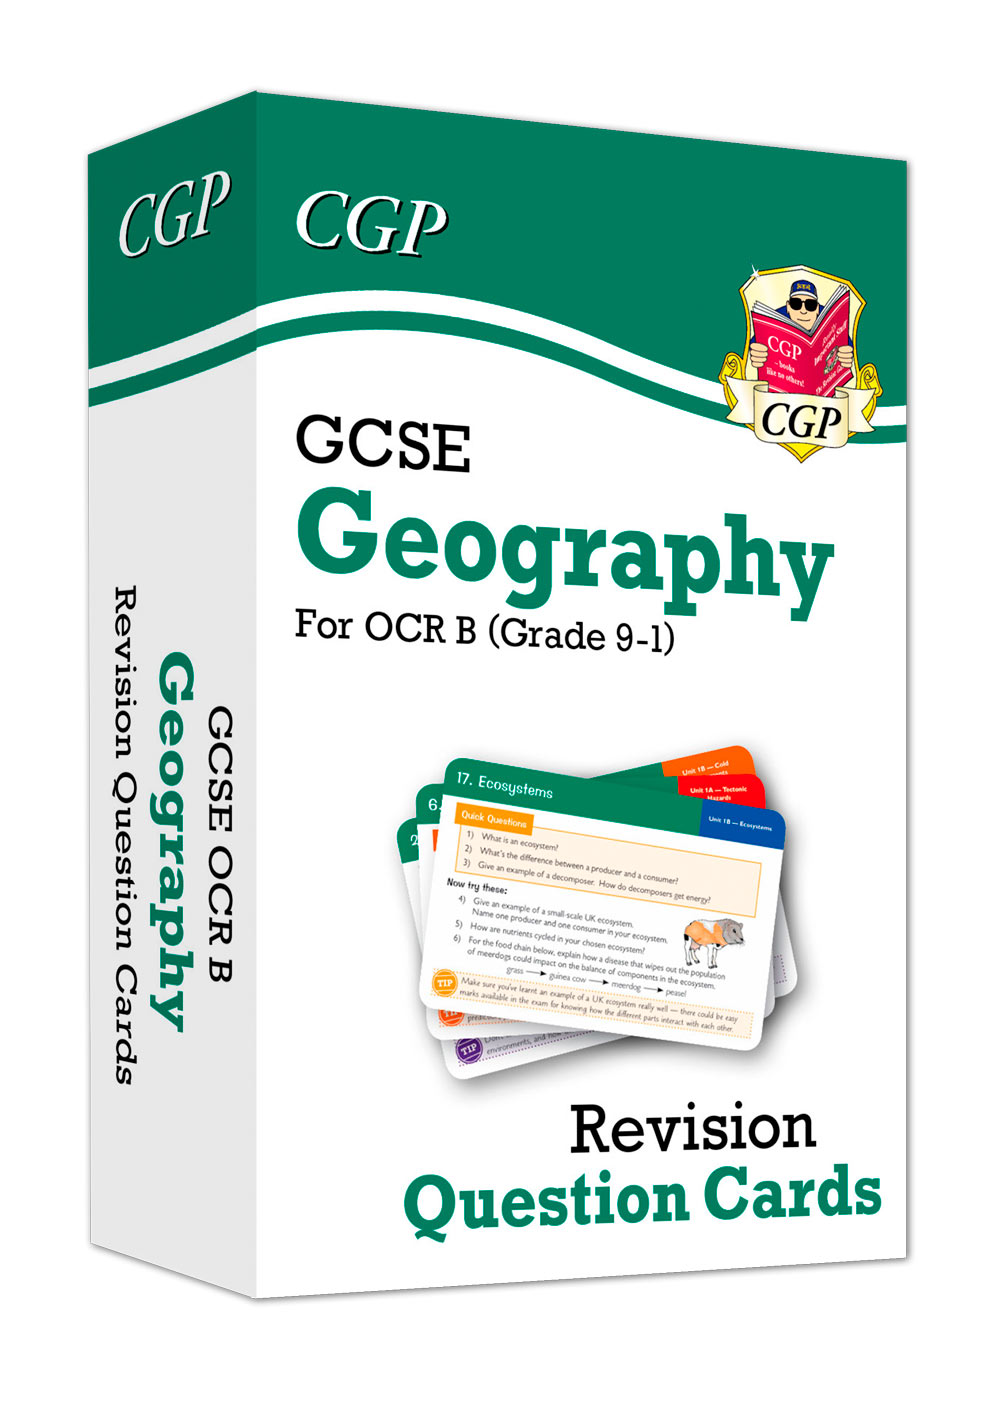 GRF41 - New Grade 9-1 GCSE Geography OCR B Revision Question Cards